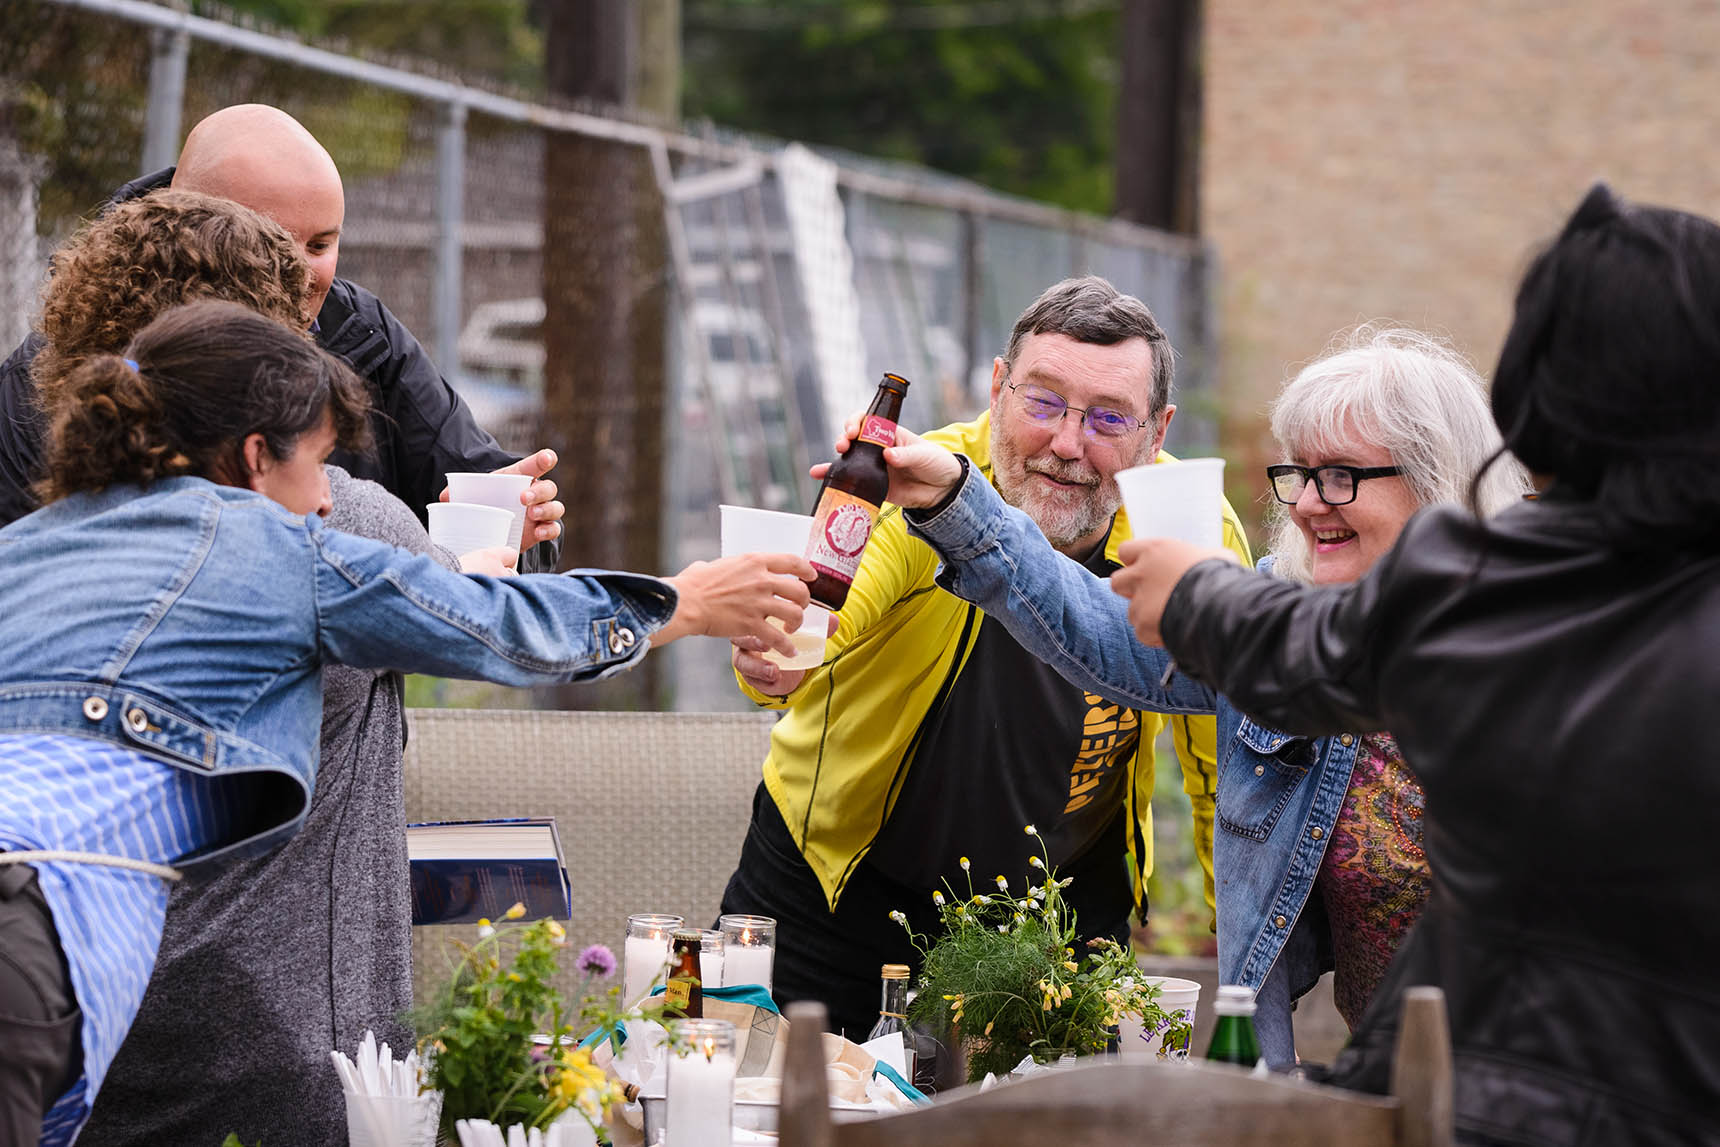 Event photography for Peterson Garden Project by Michael Courier